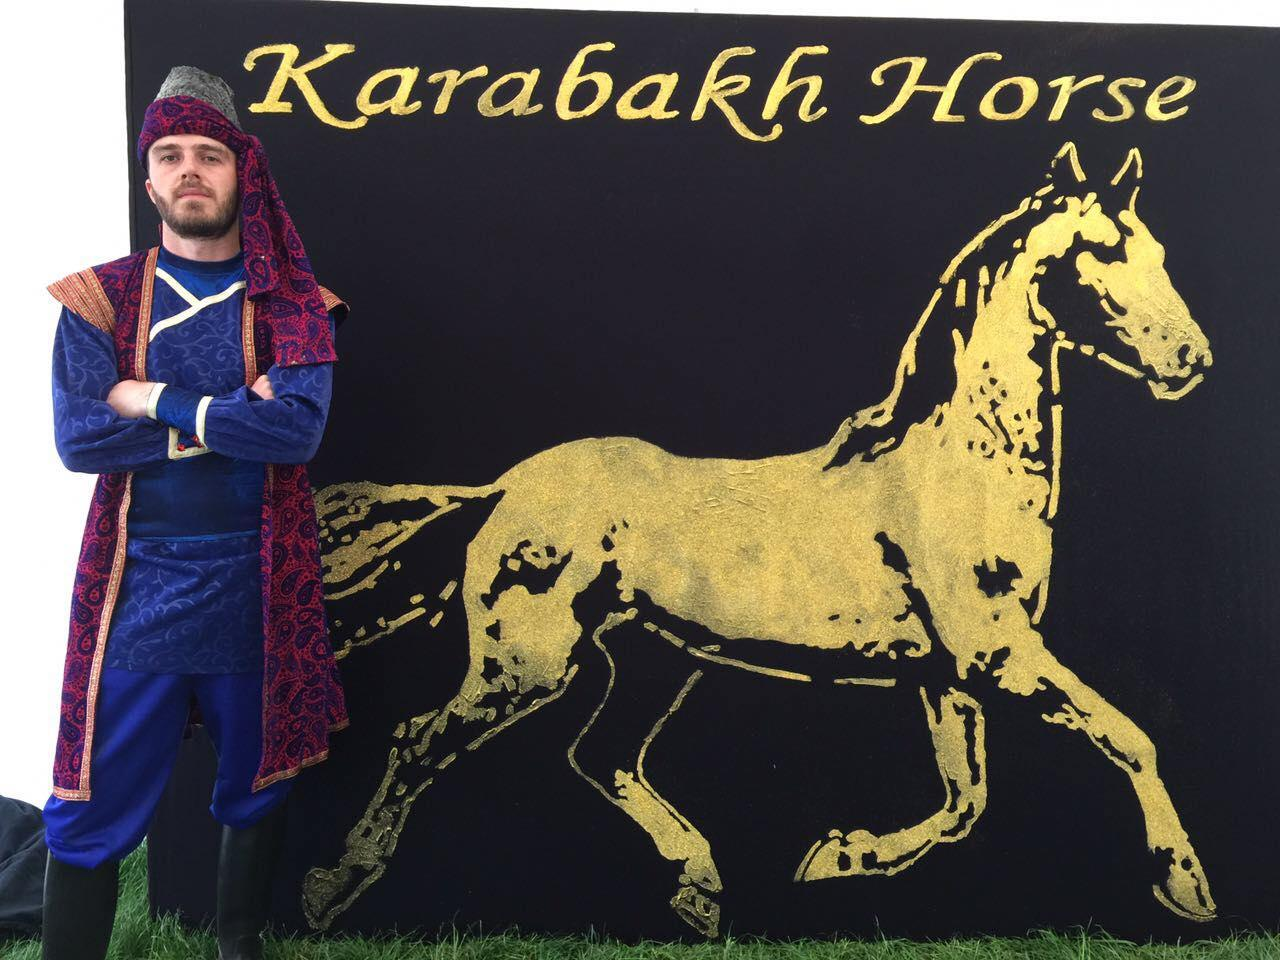 Karabakh horses perform in a show in London (PHOTO)